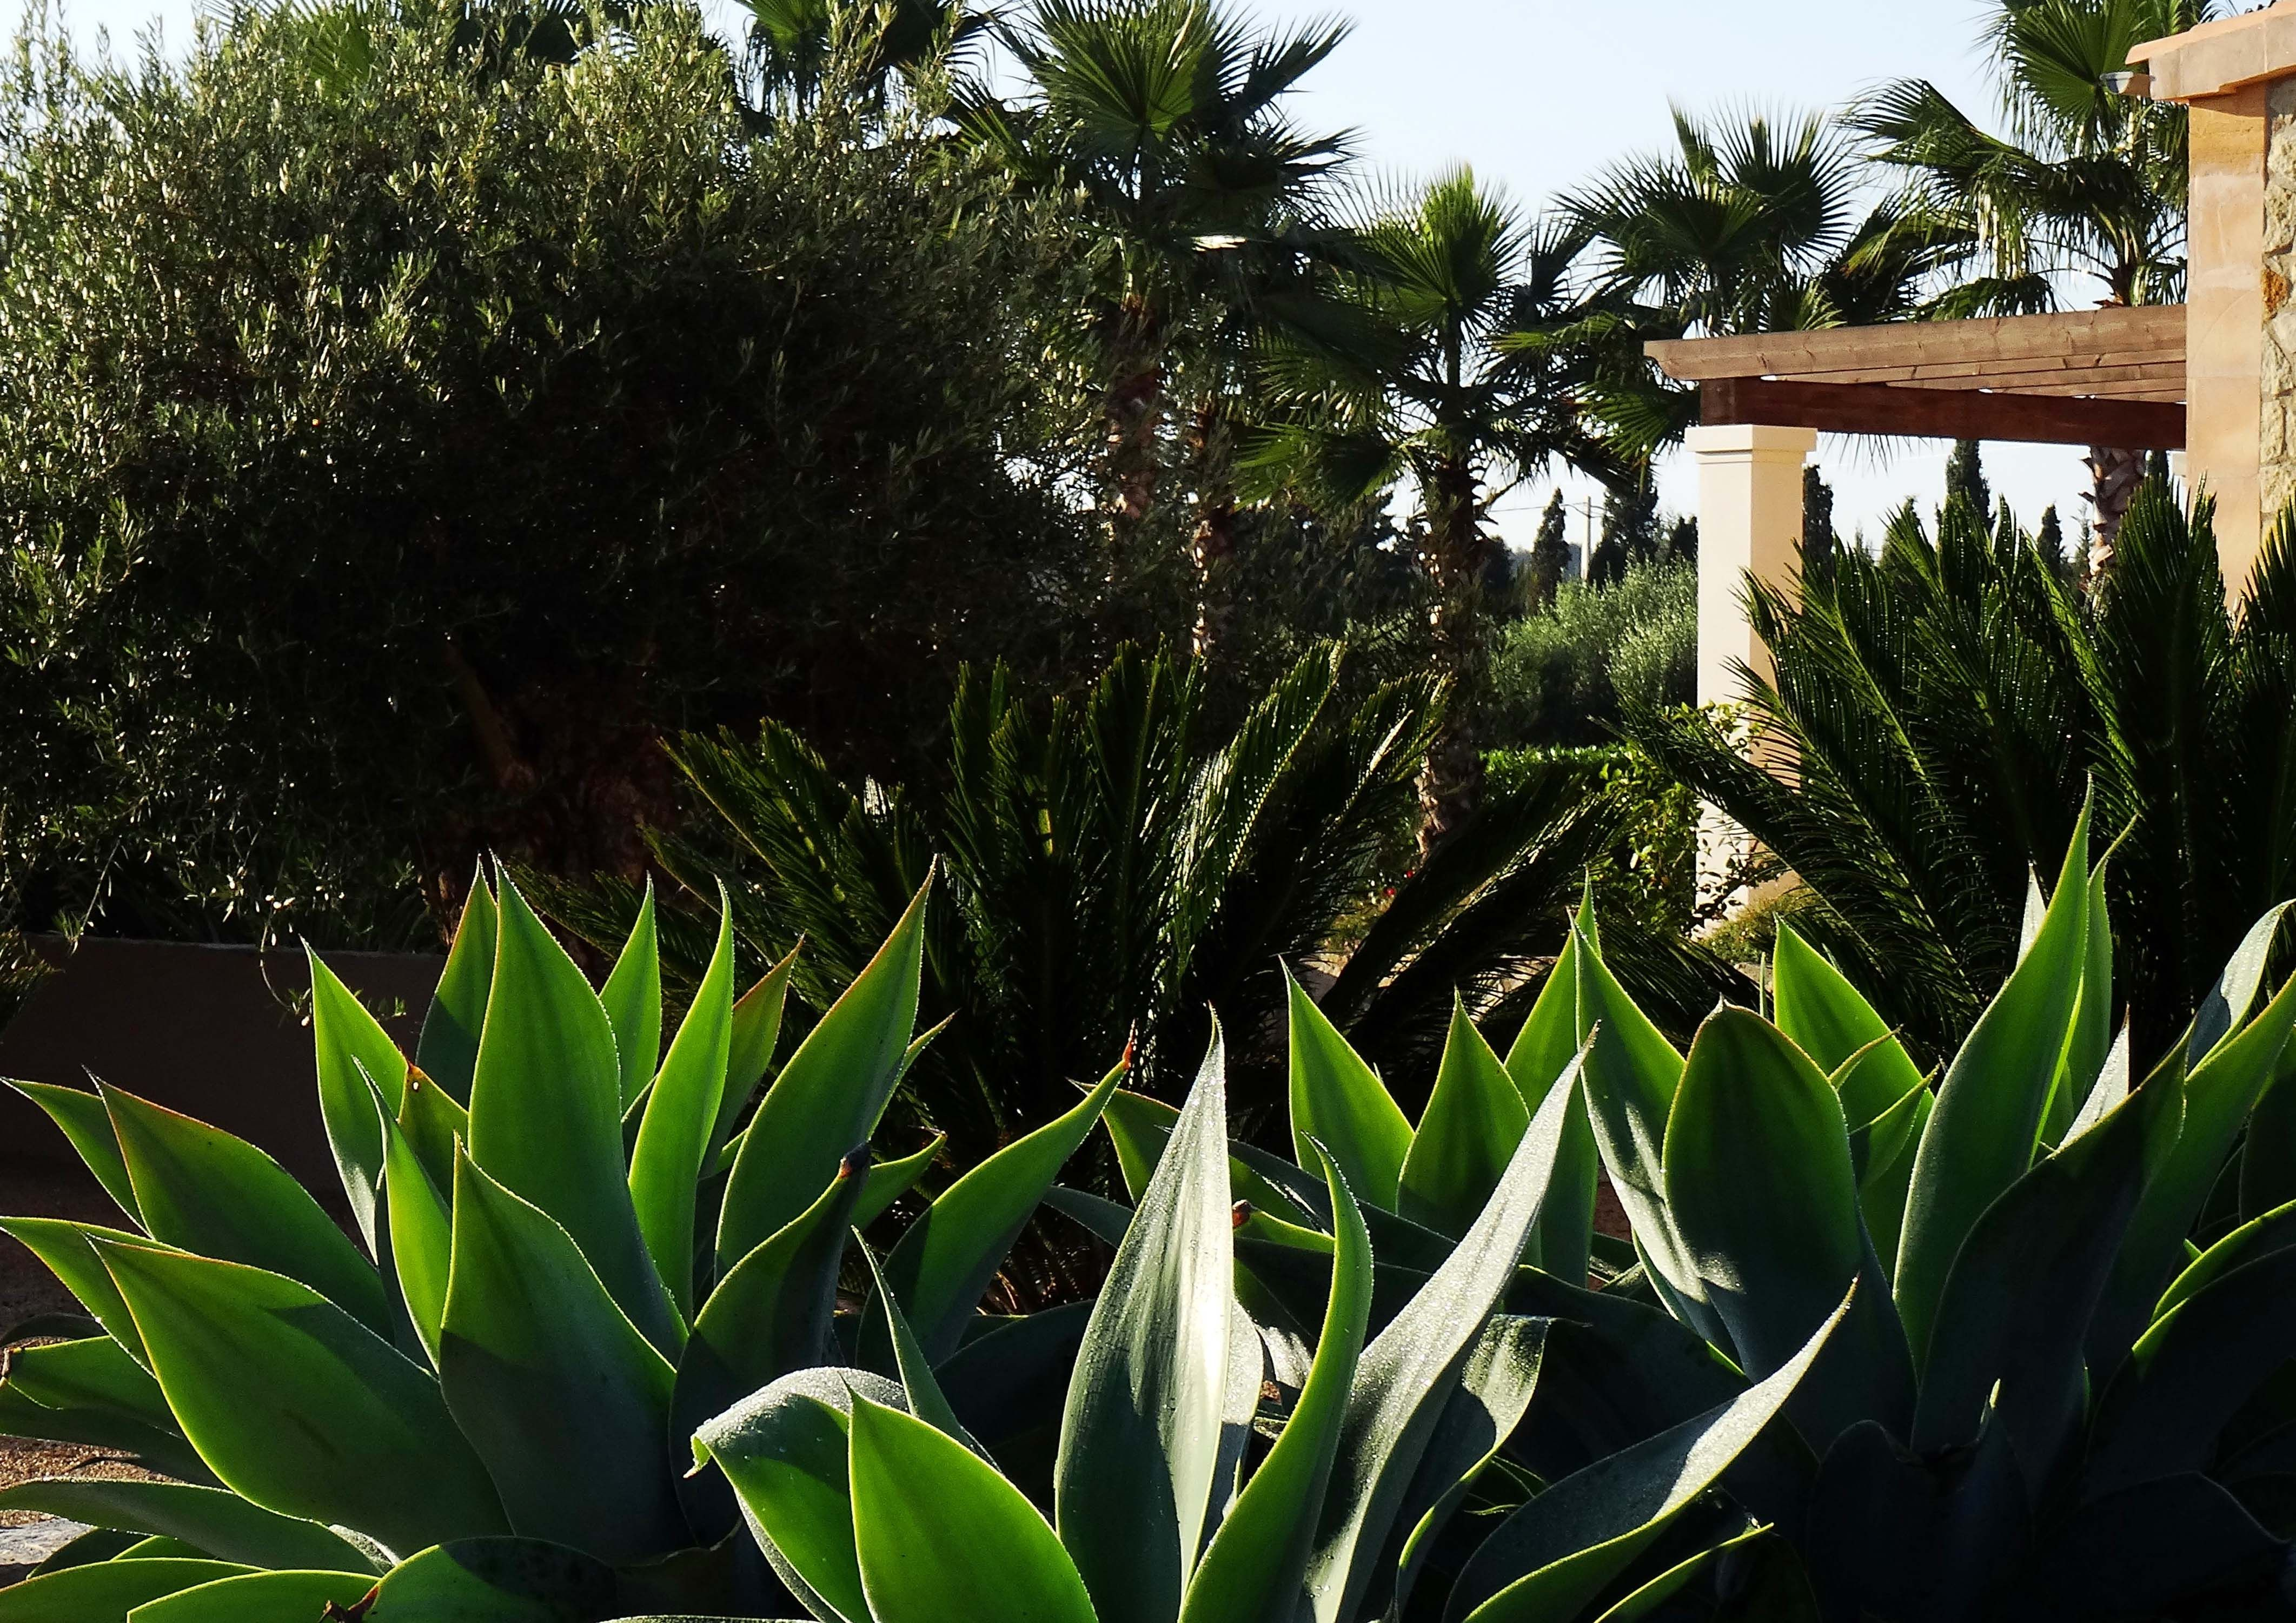 Sub tropical planting- cycads, agaves and washingtonia. All hardy in the mediterranean climate.